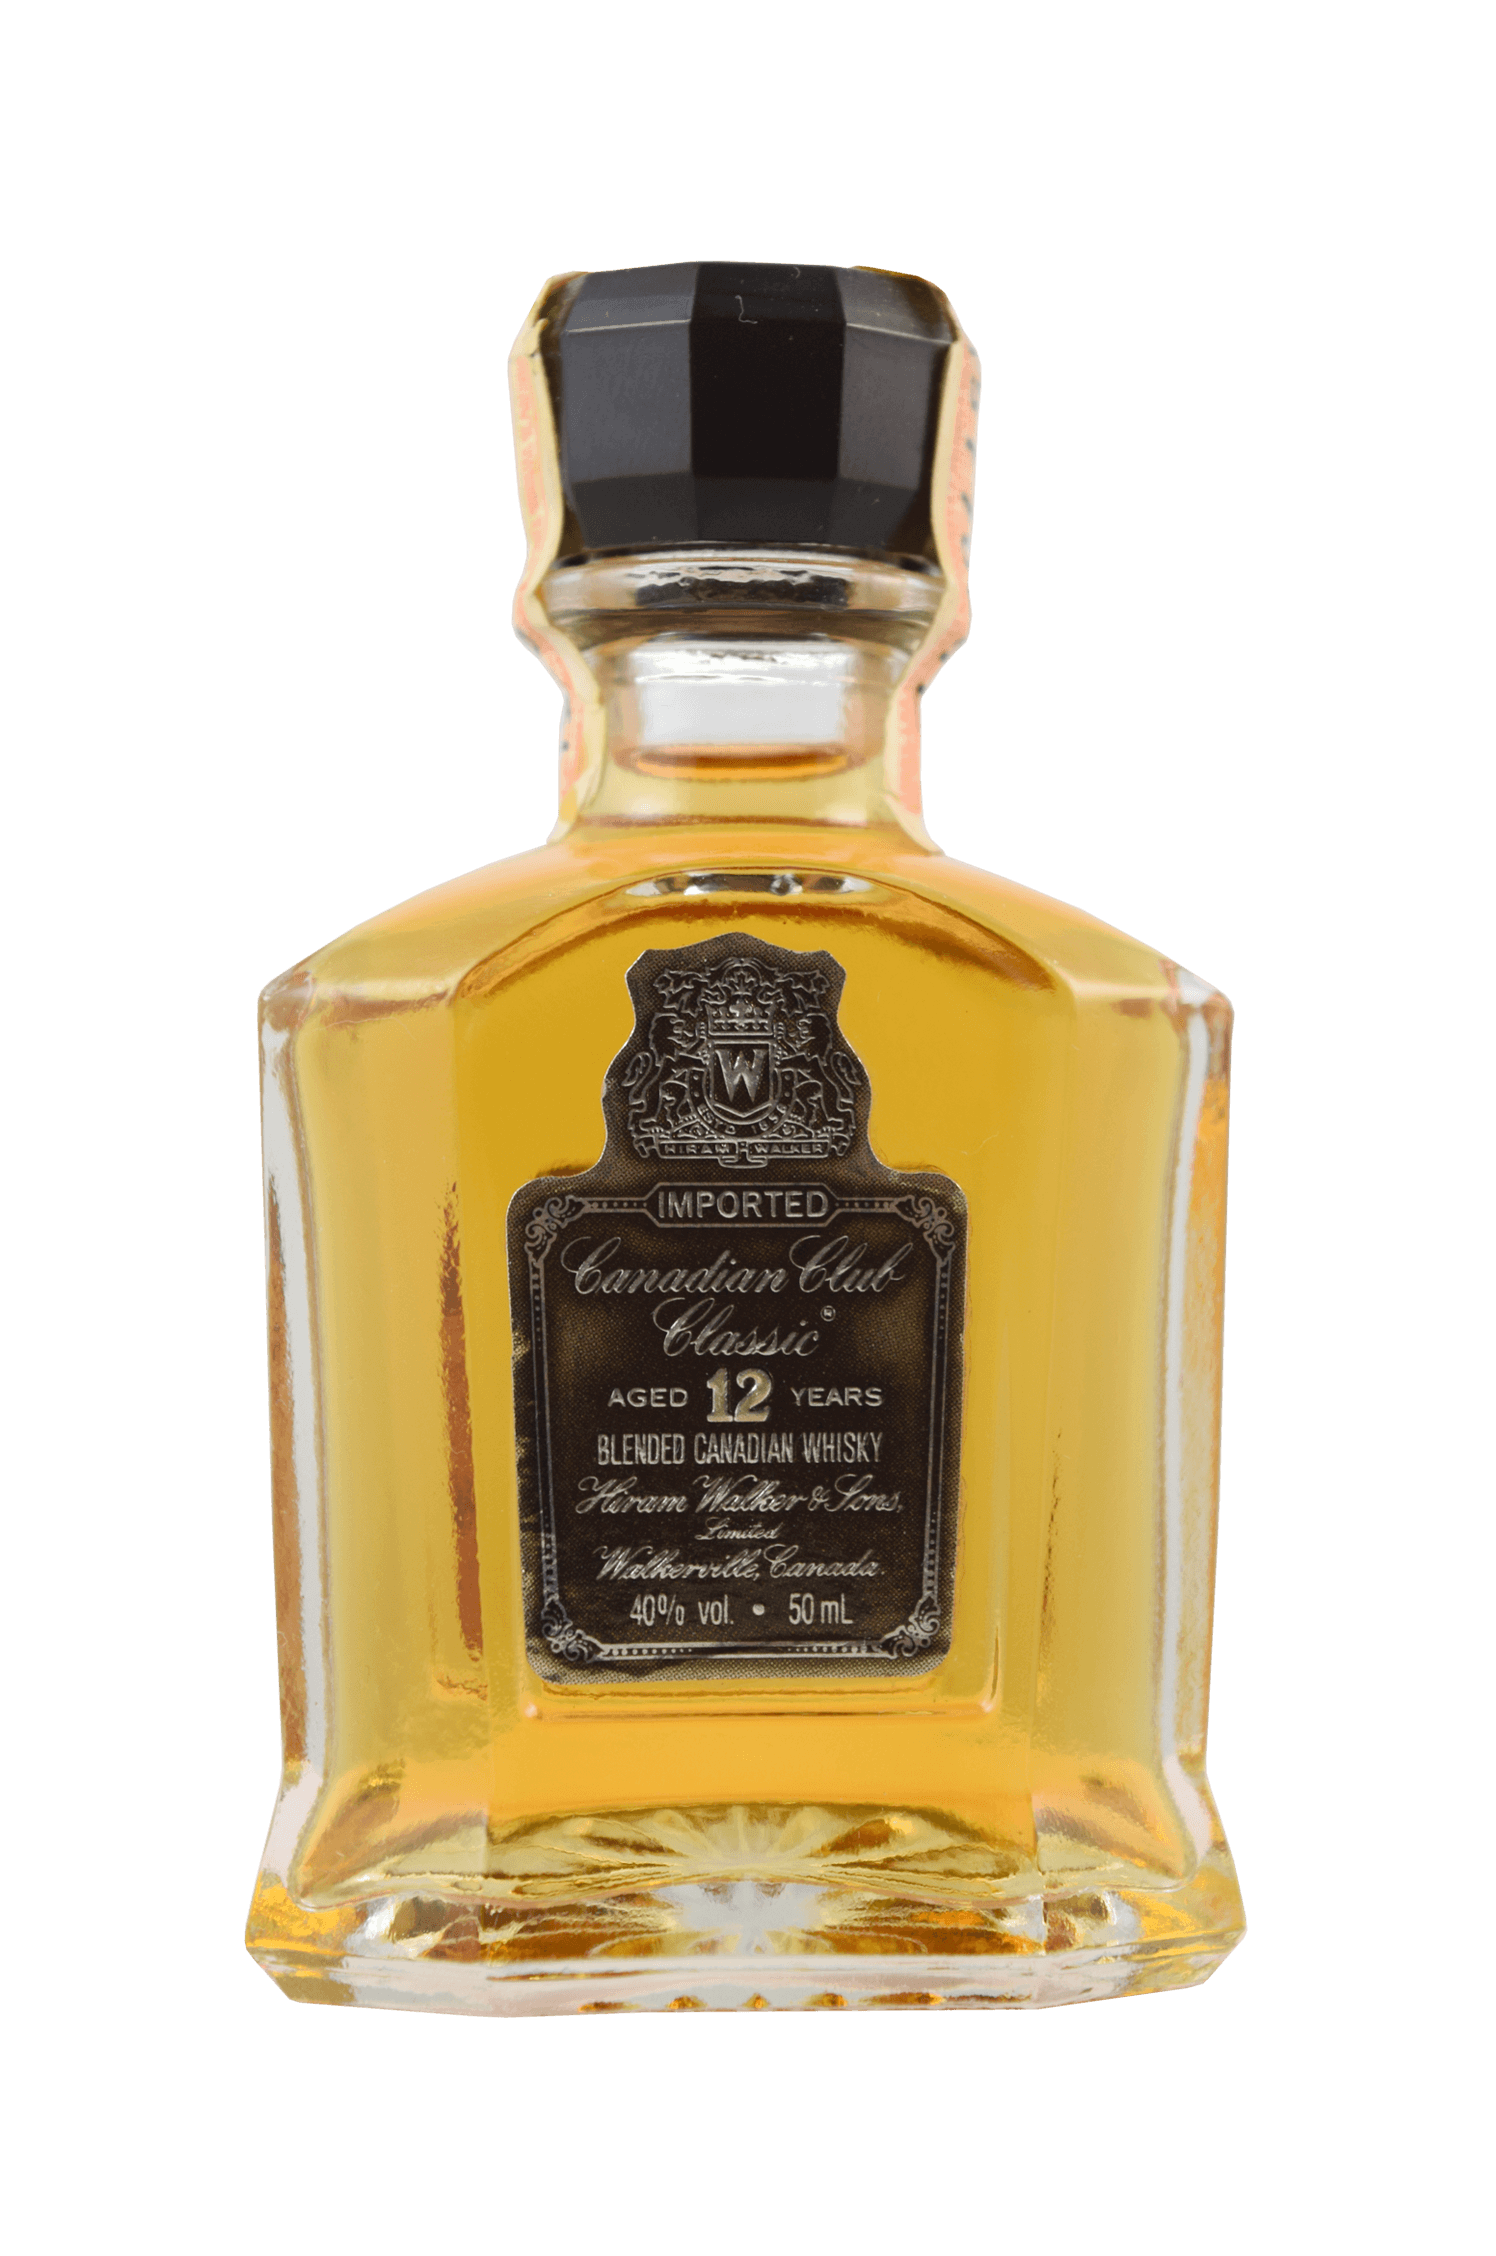 Canadian Club Classic 12 Years